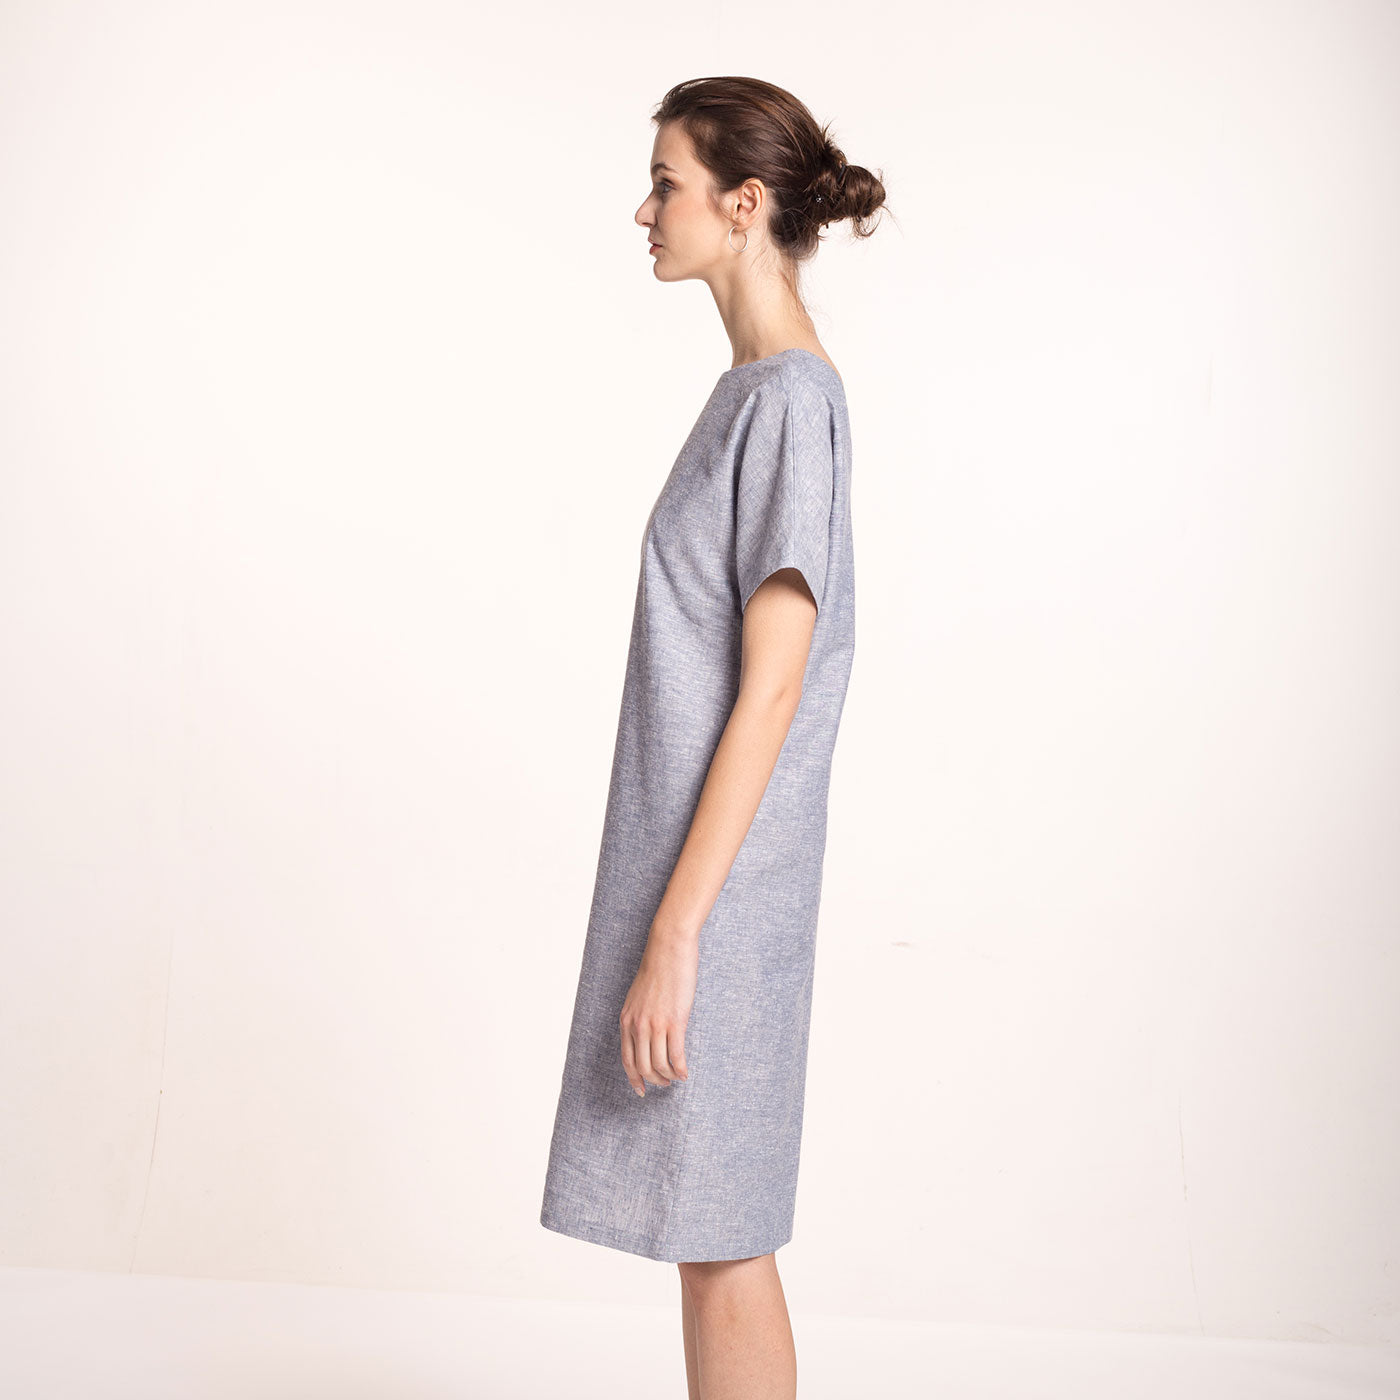 The model wears a light blue, sustainable, organic cotton and hemp dress, with short sleeves and round neckline, side view.